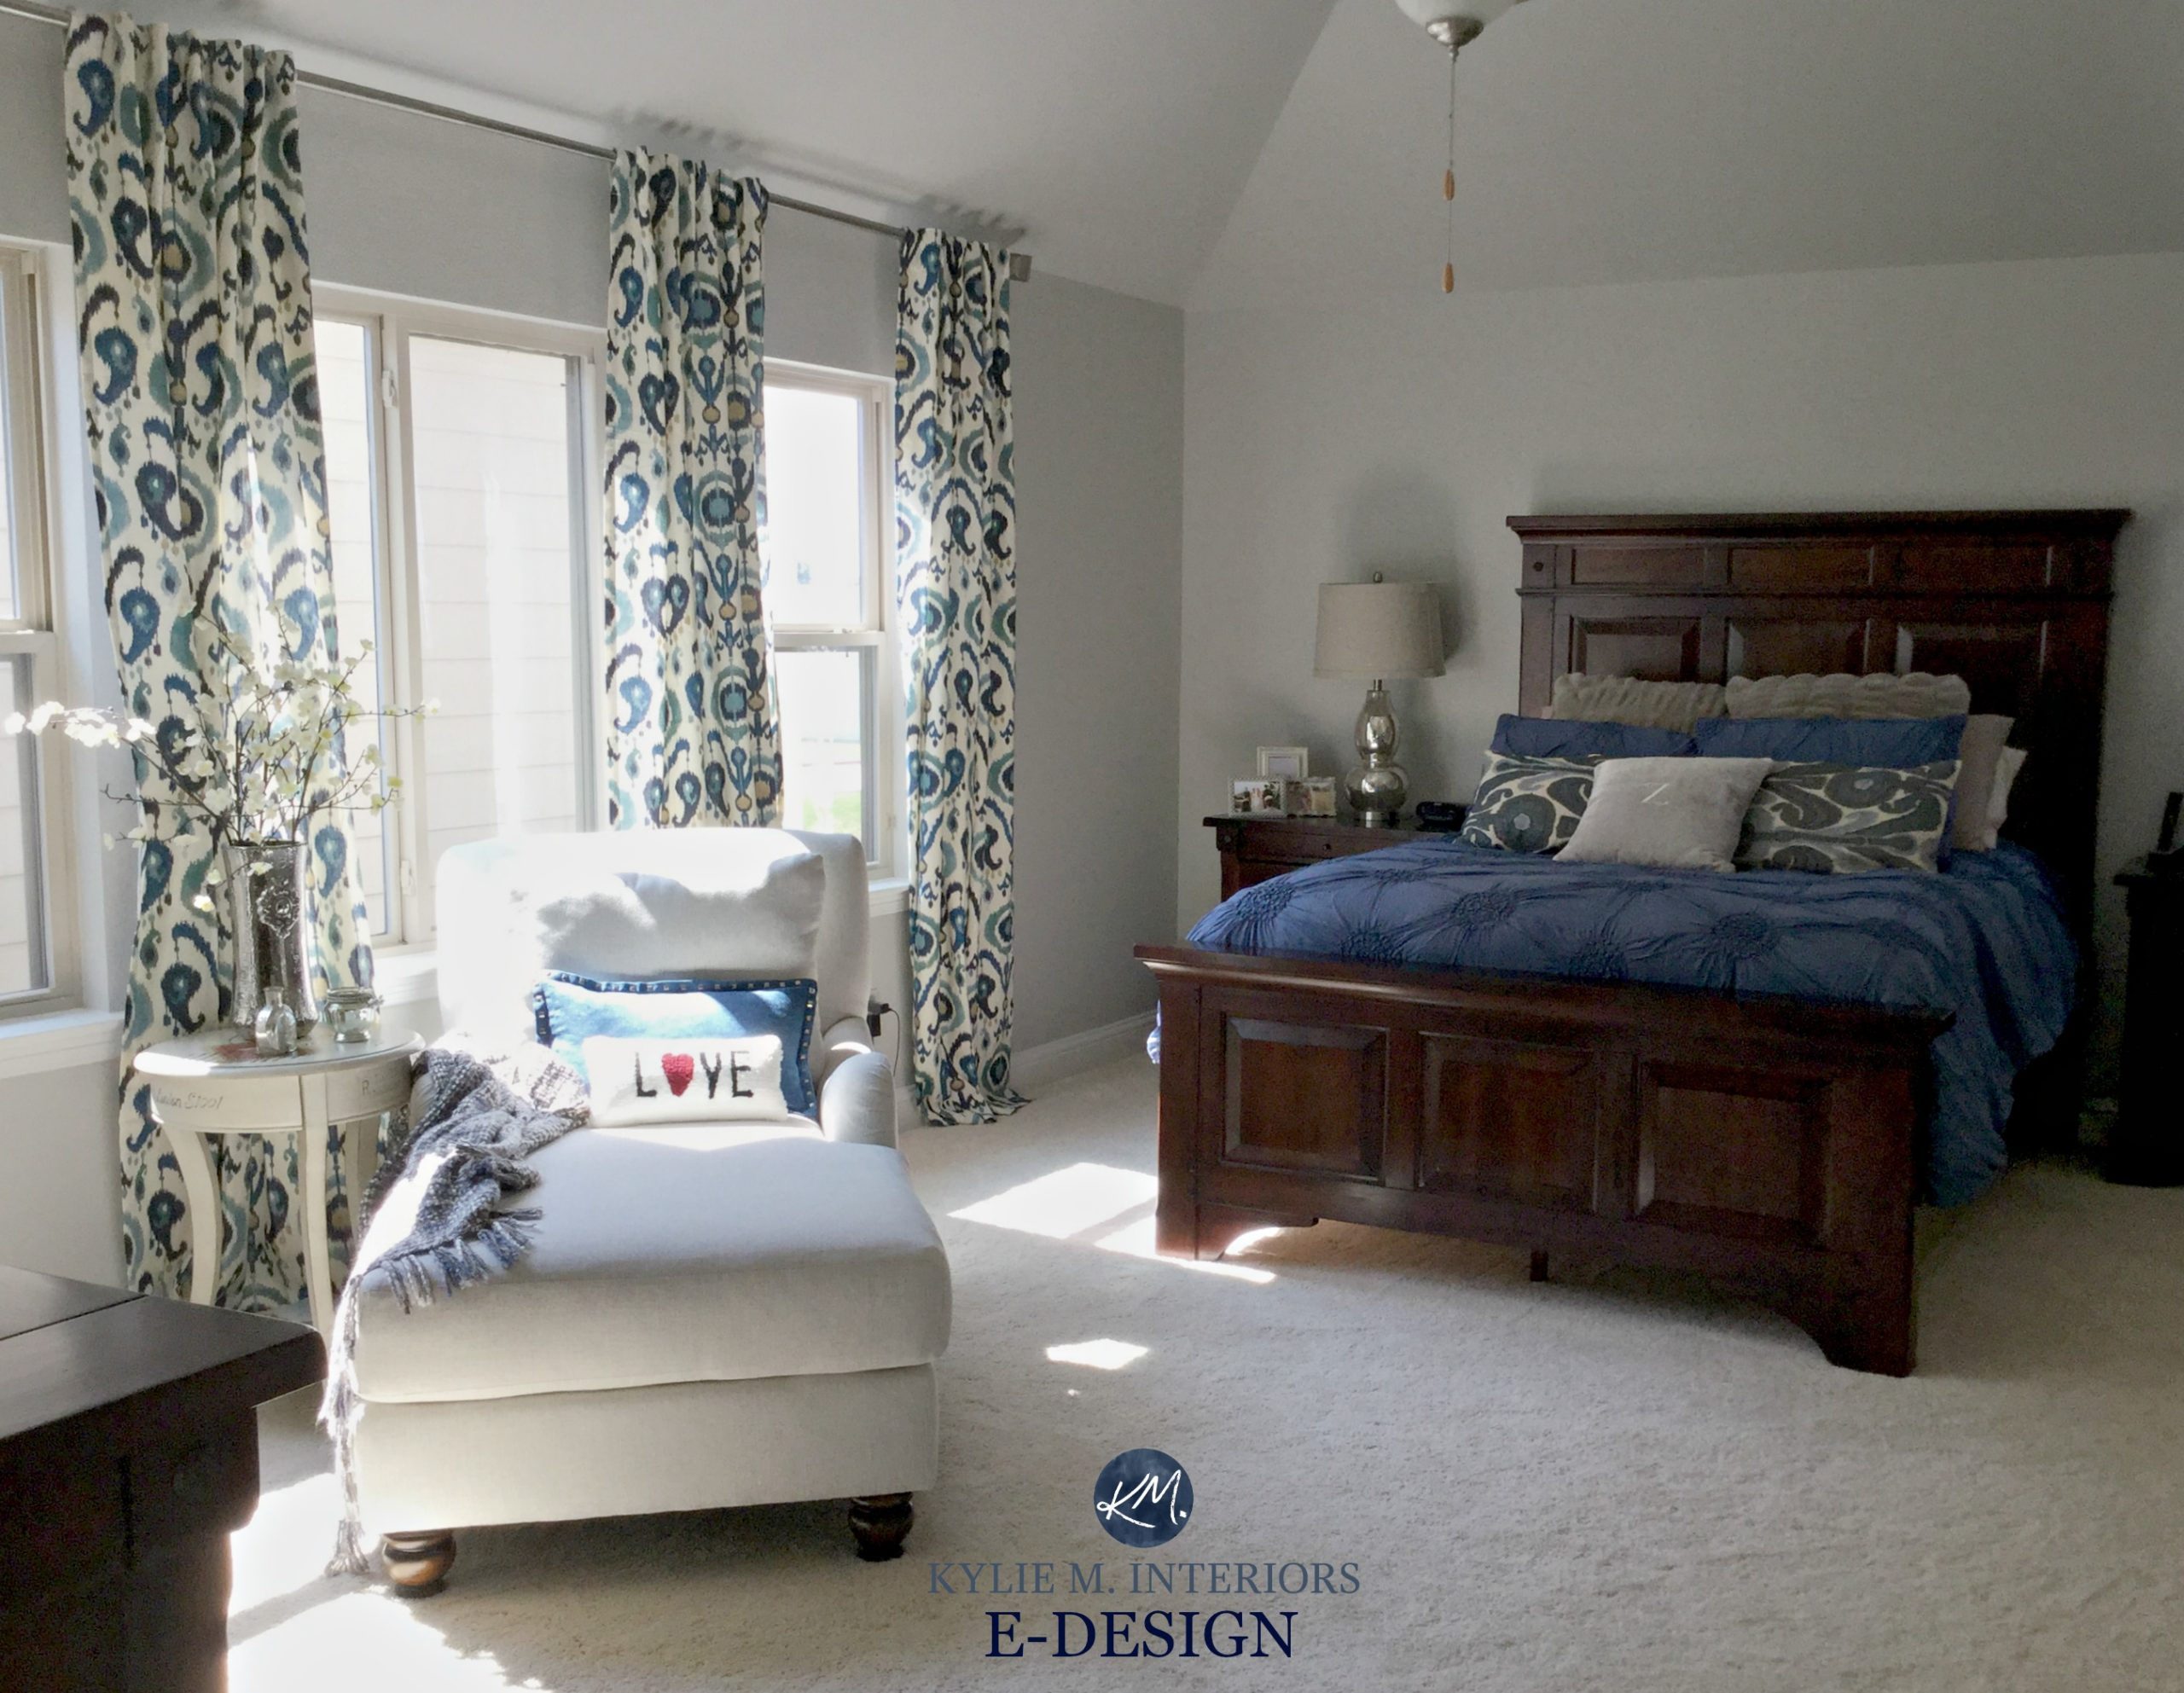 Sherwin williams repose gray master bedroom with dark cherry wood furniture navy blue white Master bedroom with grey furniture